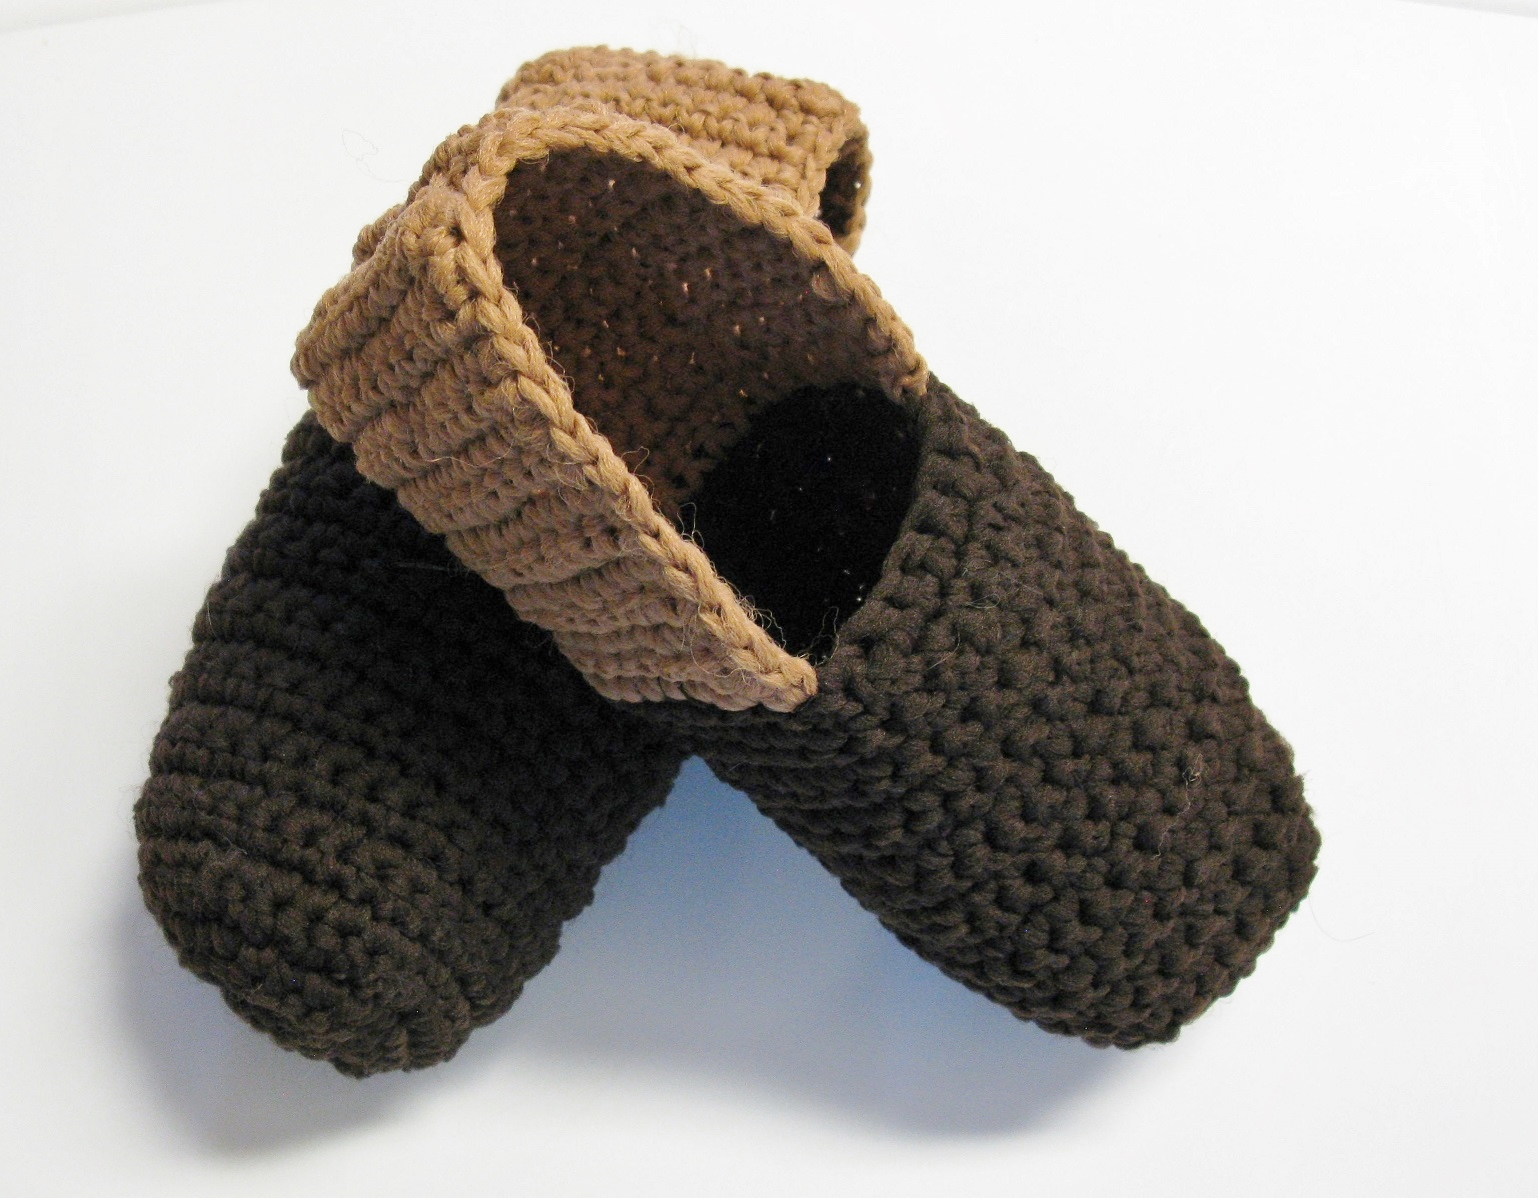 Pantoufles faciles au crochet pour hommes